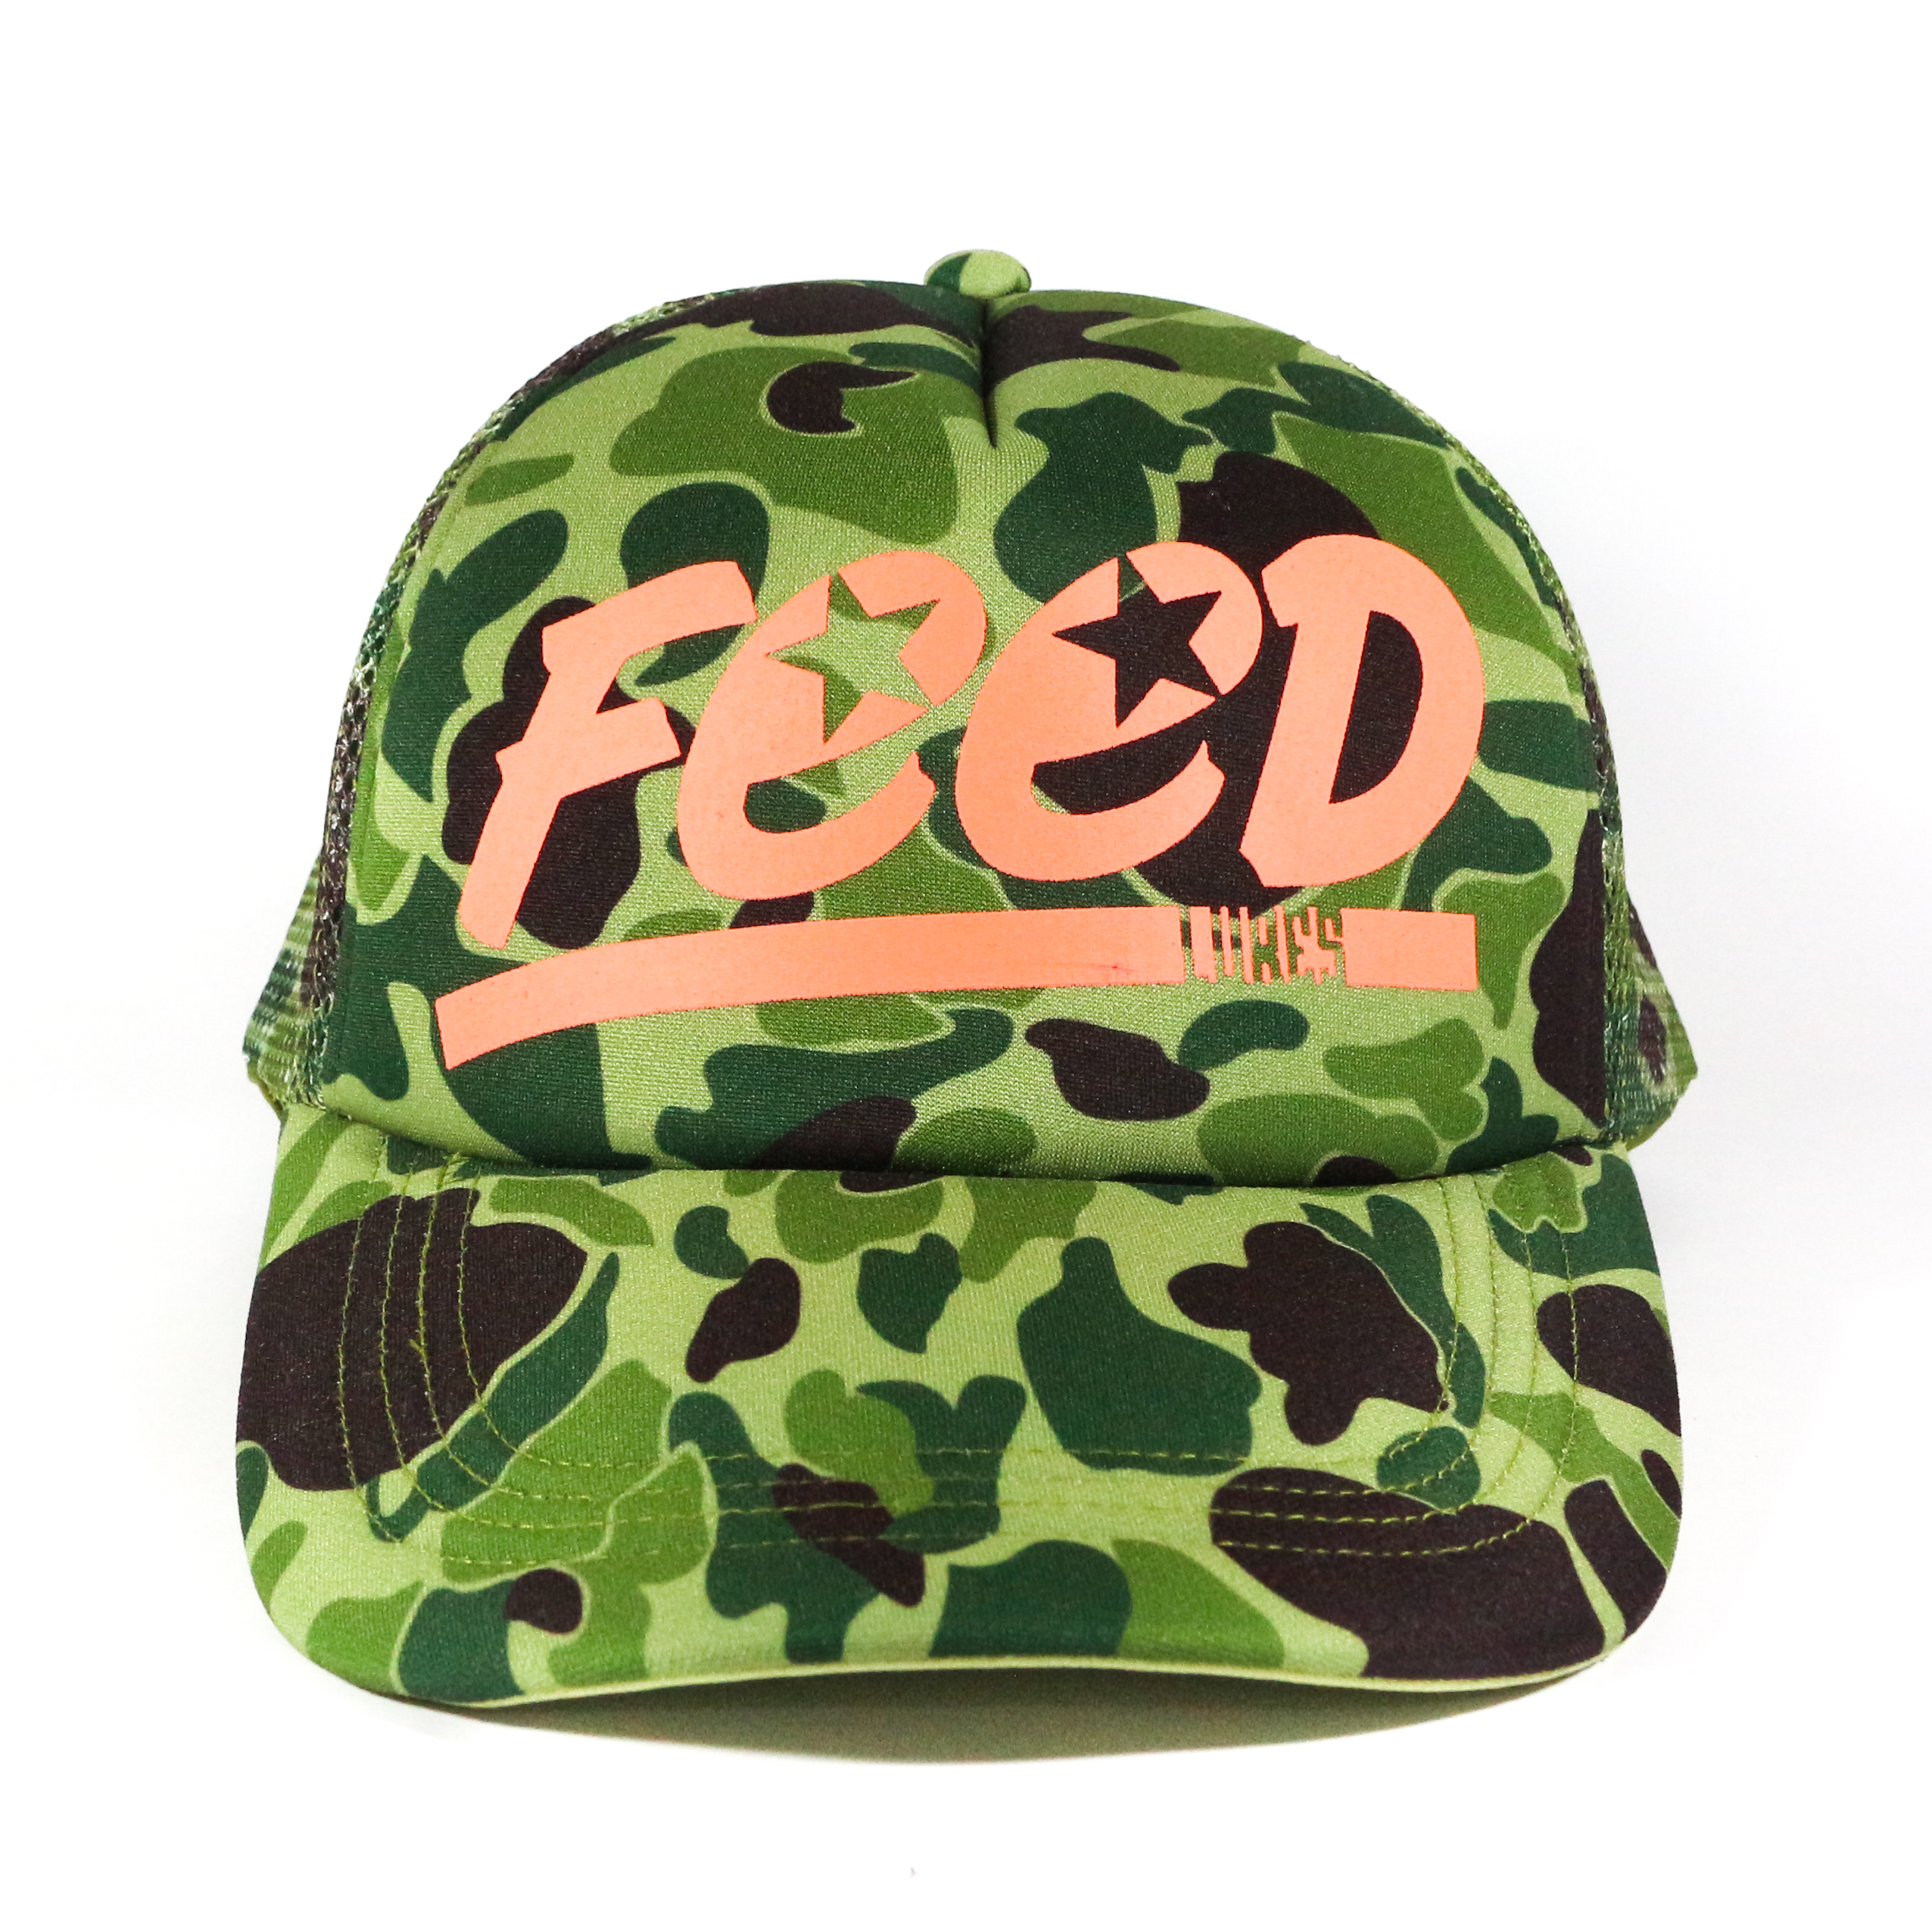 Feed Lures Cap Jungle Mesh Cap Free Size Green Camo (0075)